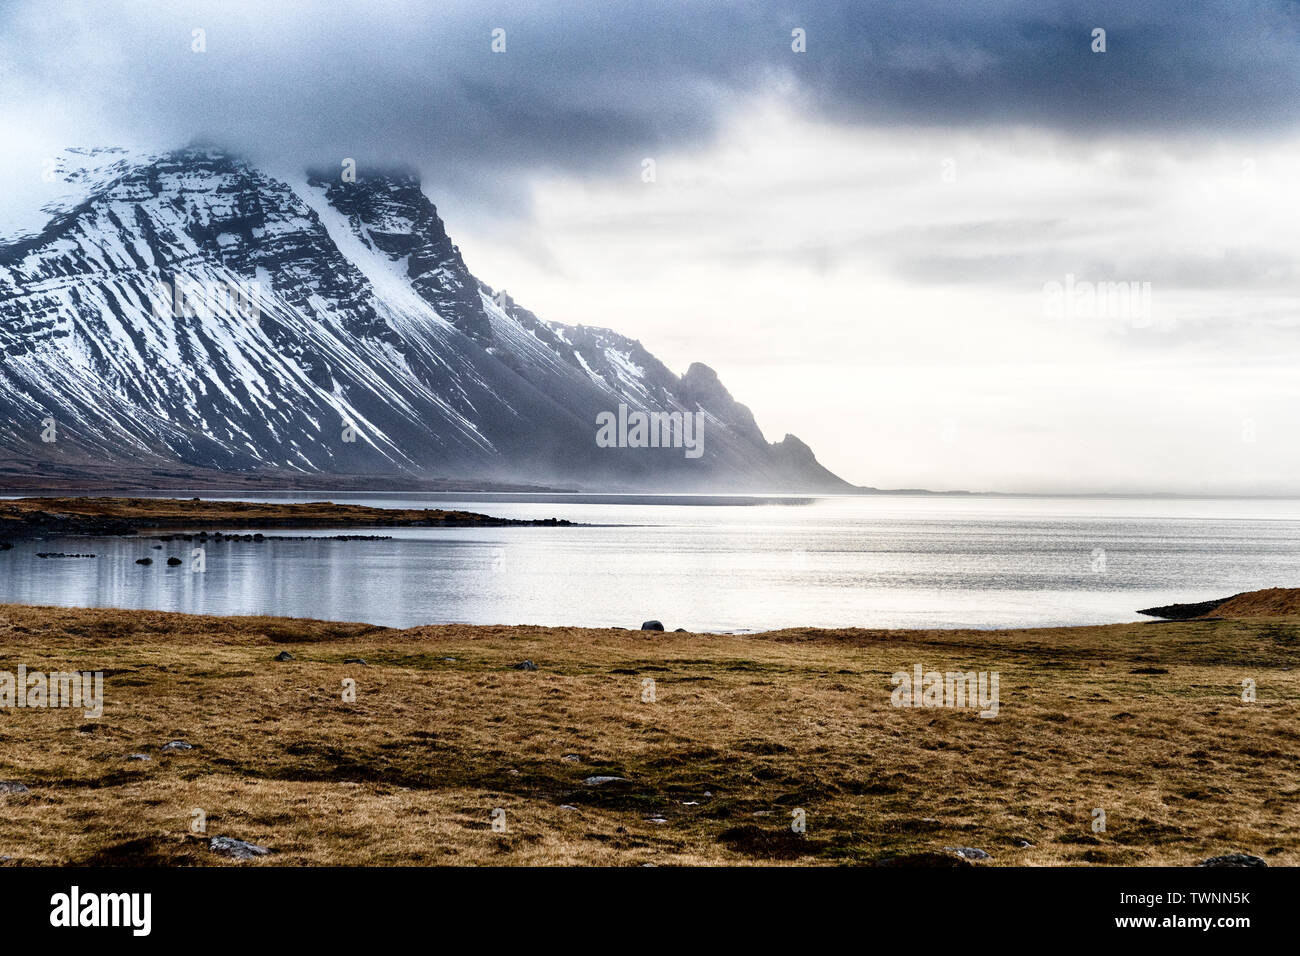 The south east coast of Iceland - Stock Image